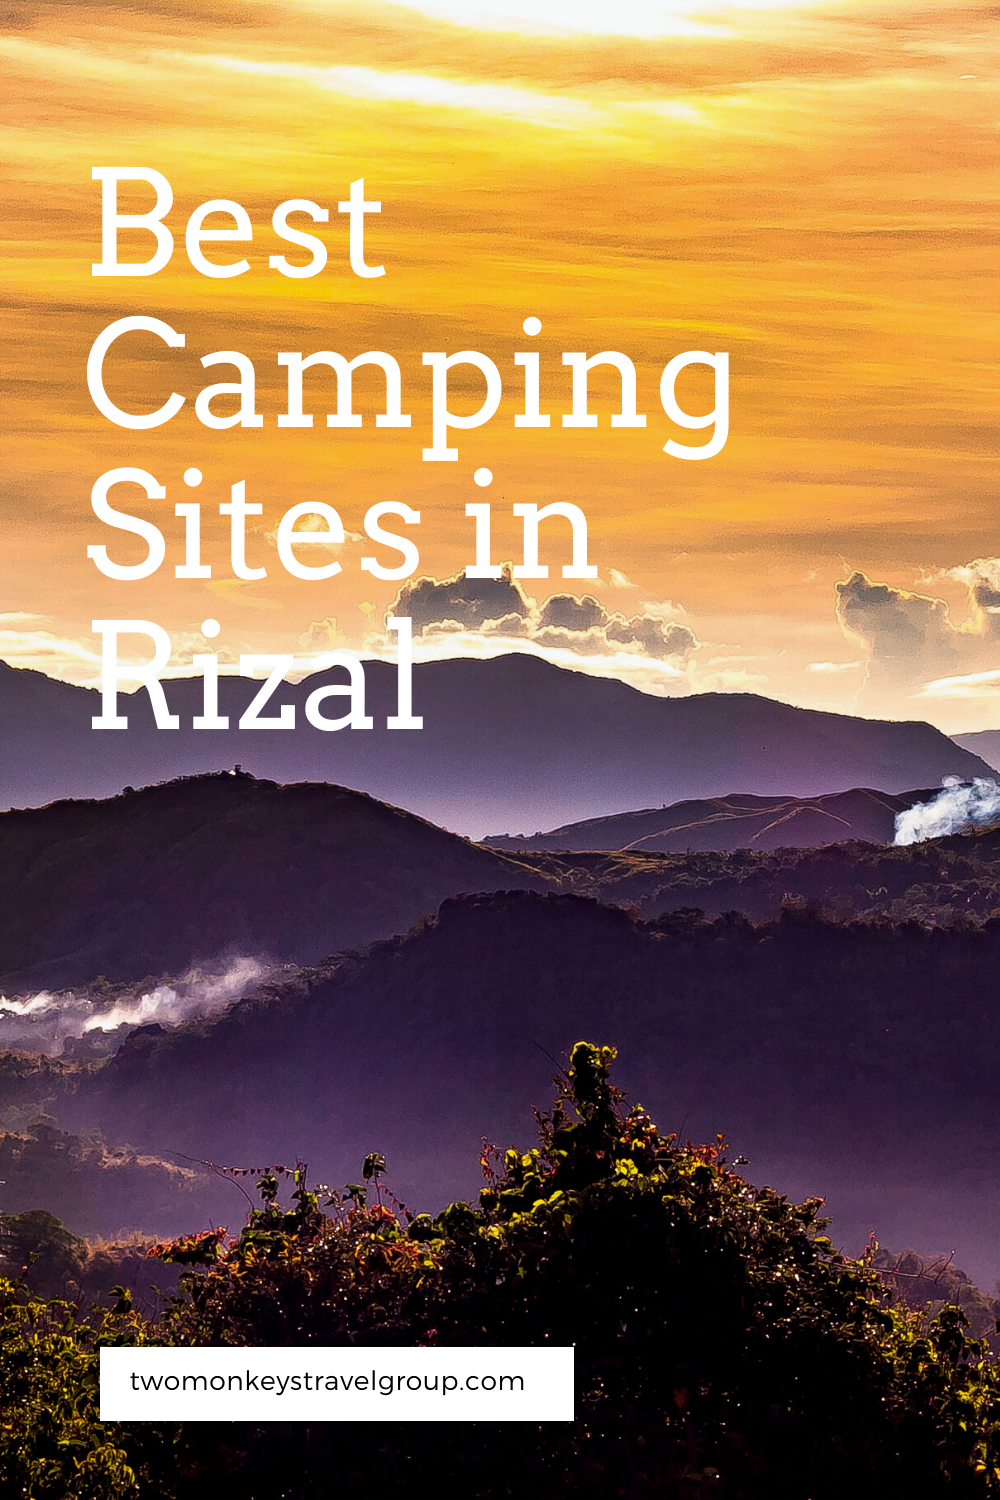 The 5 Best Camping Sites in Rizal